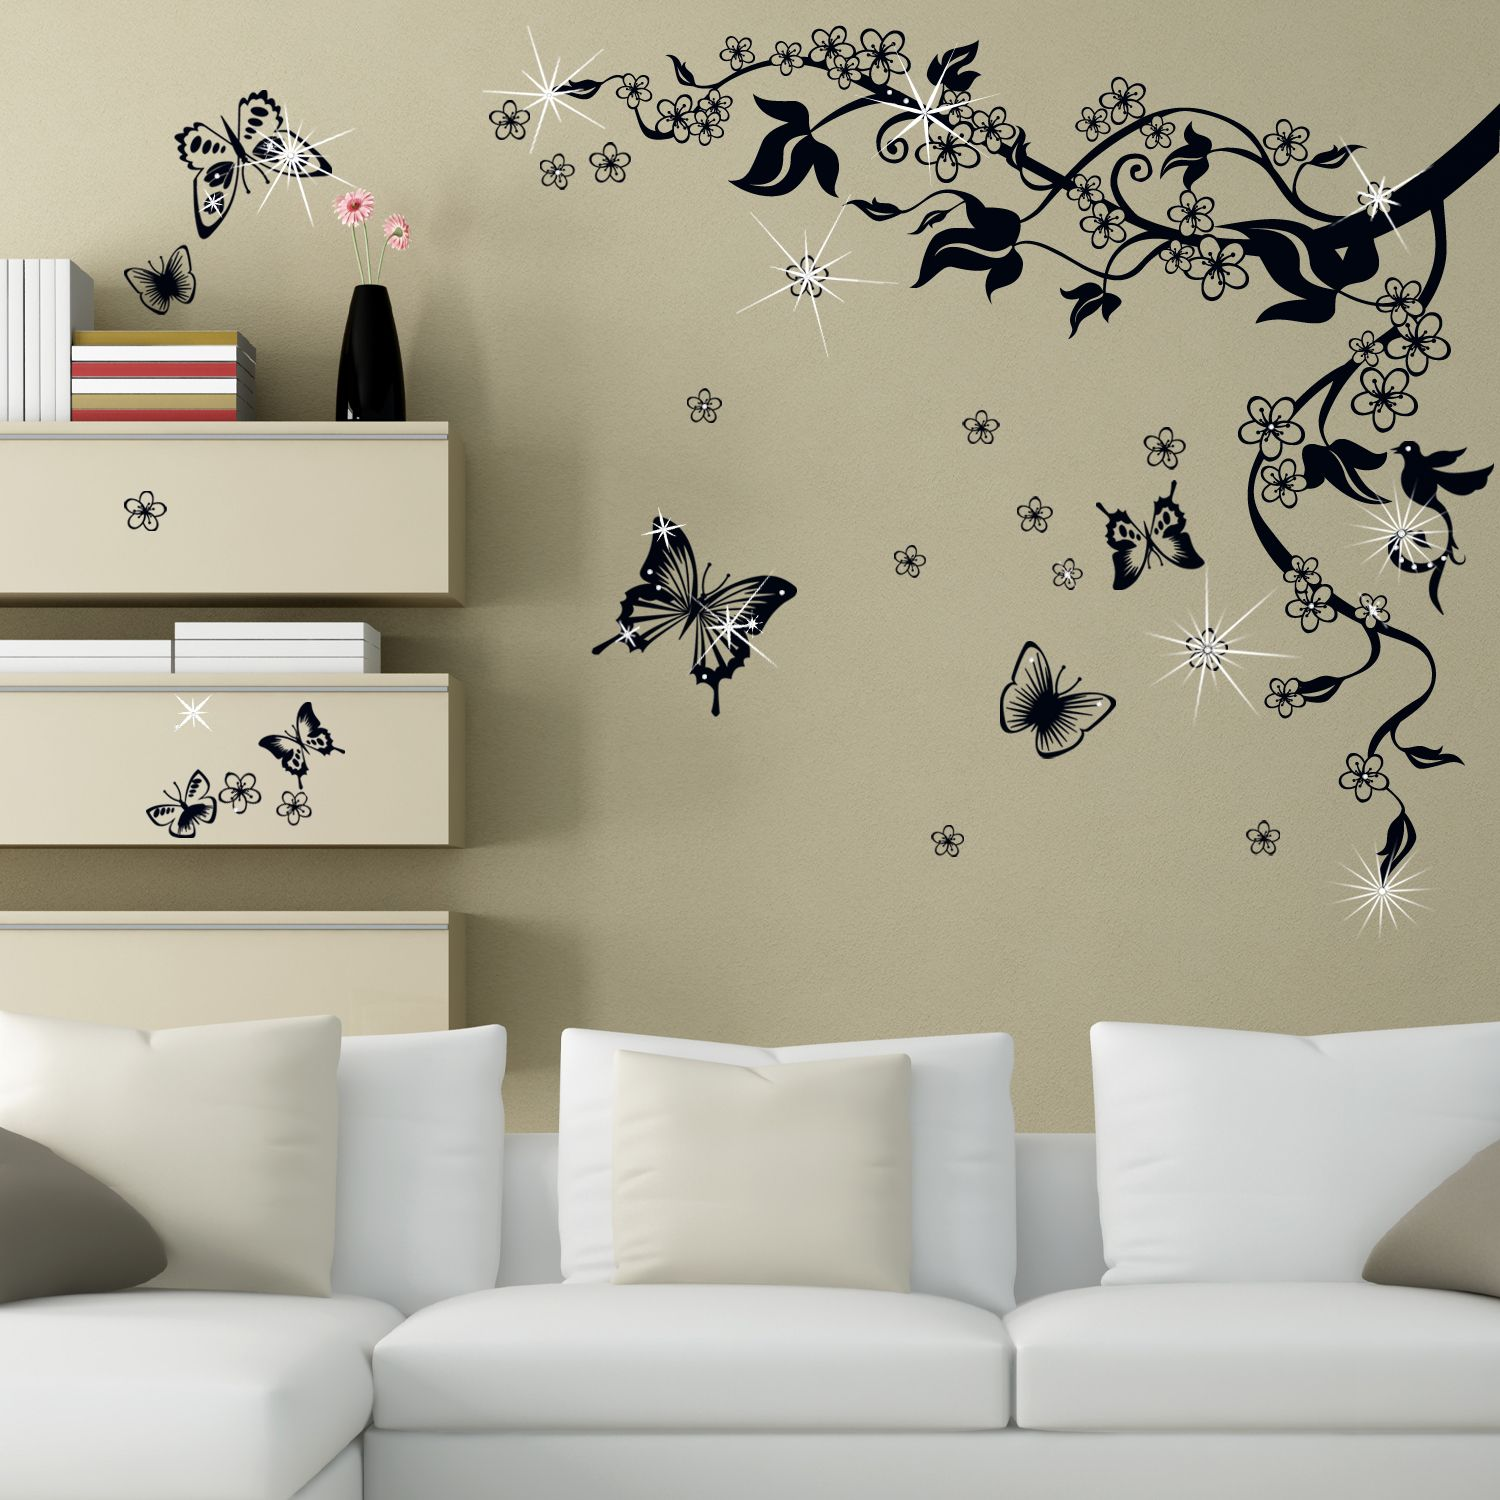 Wall Sticker Decal Butterfly Vine with Swarovski Crystals